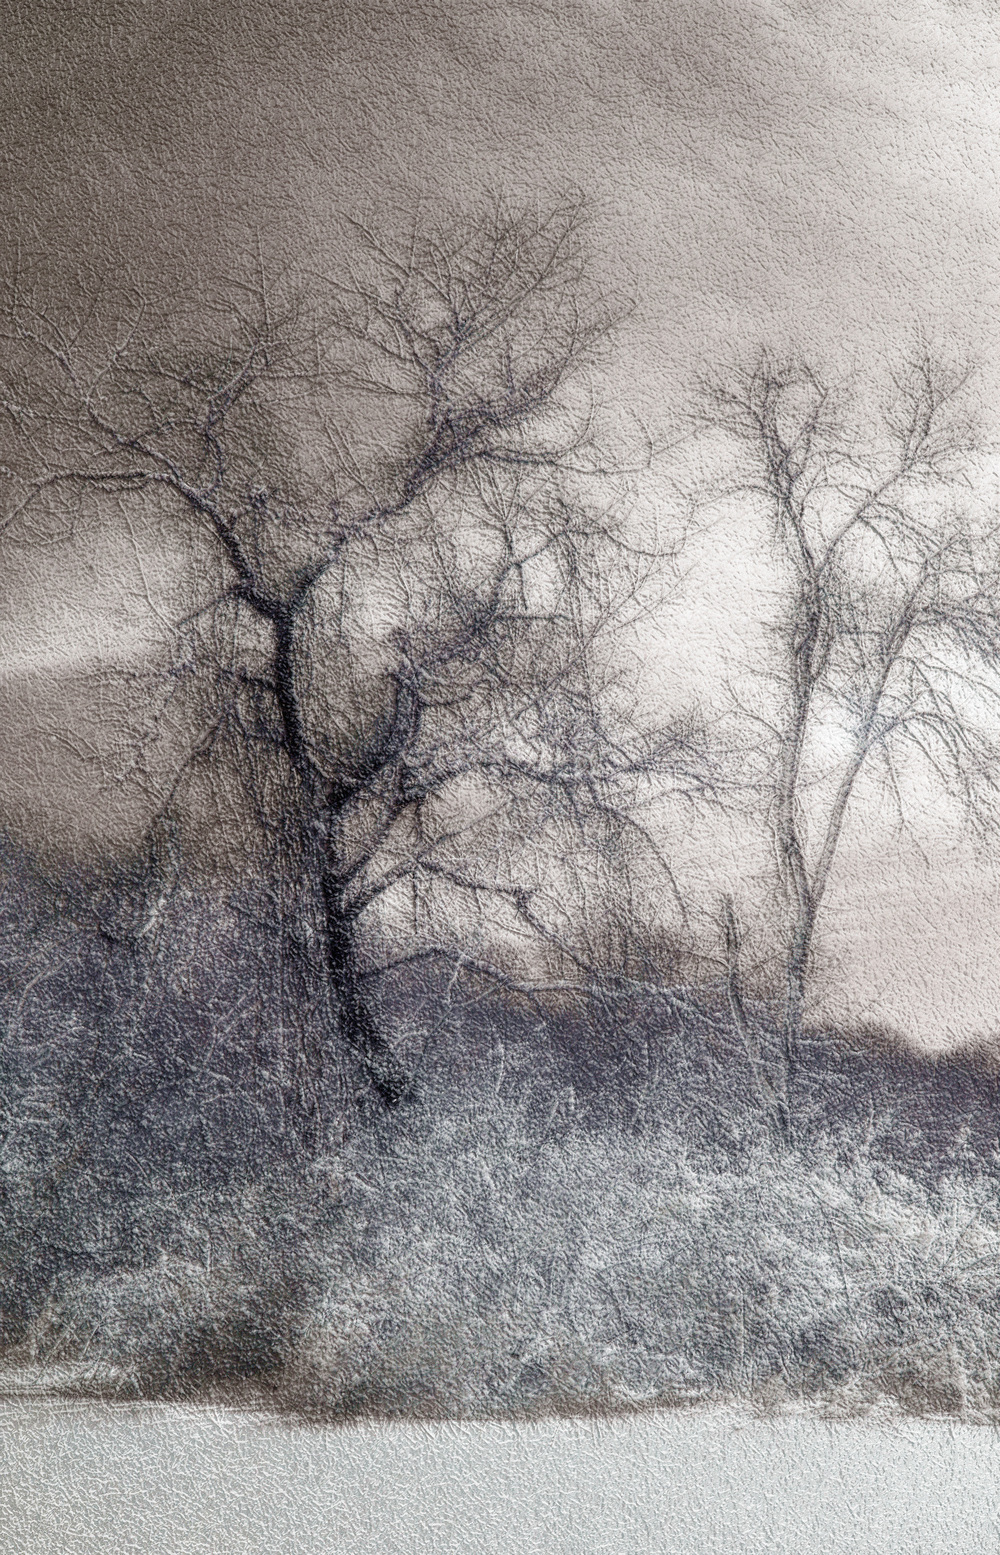 "Great Neck Snow Trees 04,     Harvey Goldman, 2014    26"" x 36,"" Digital Print, 1/20"